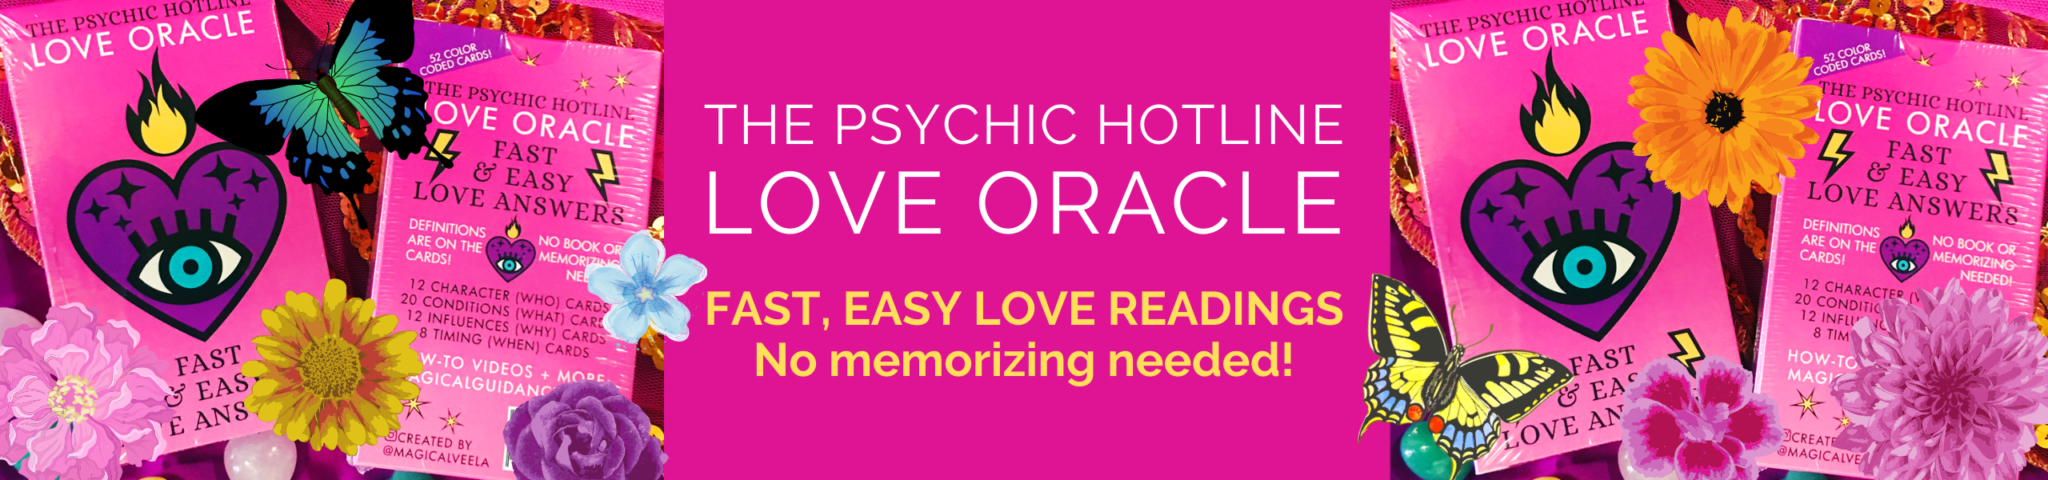 The Psychic Hotline Love Oracle Deck | magicalguidance.com